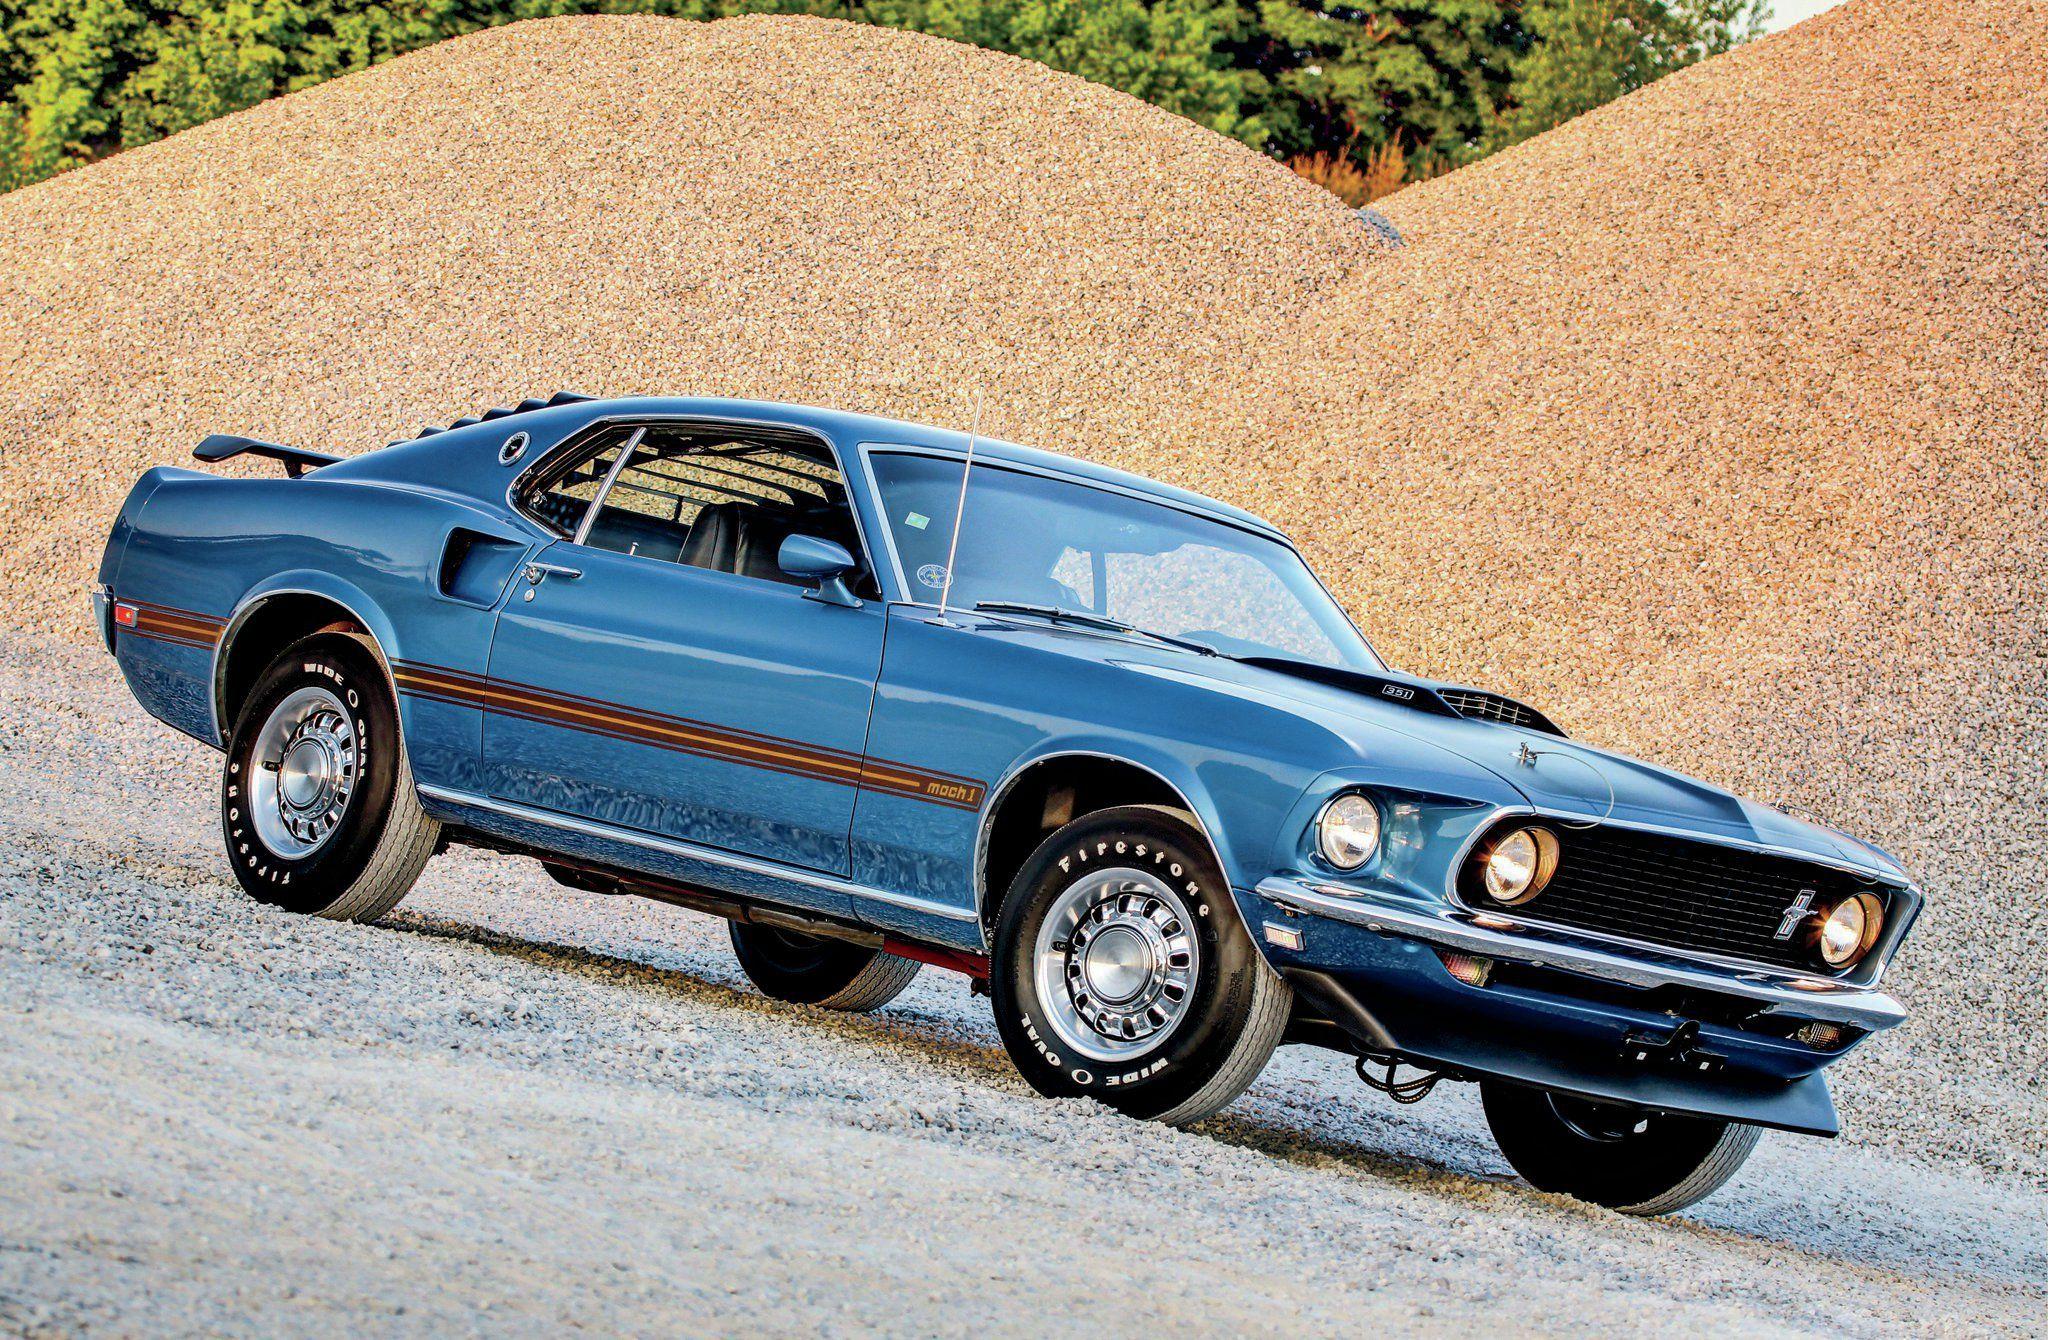 View 1969 ford mustang mach 1 blue front quarter photo 84660786 from 1969 ford mustang mach 1 second owner survivor